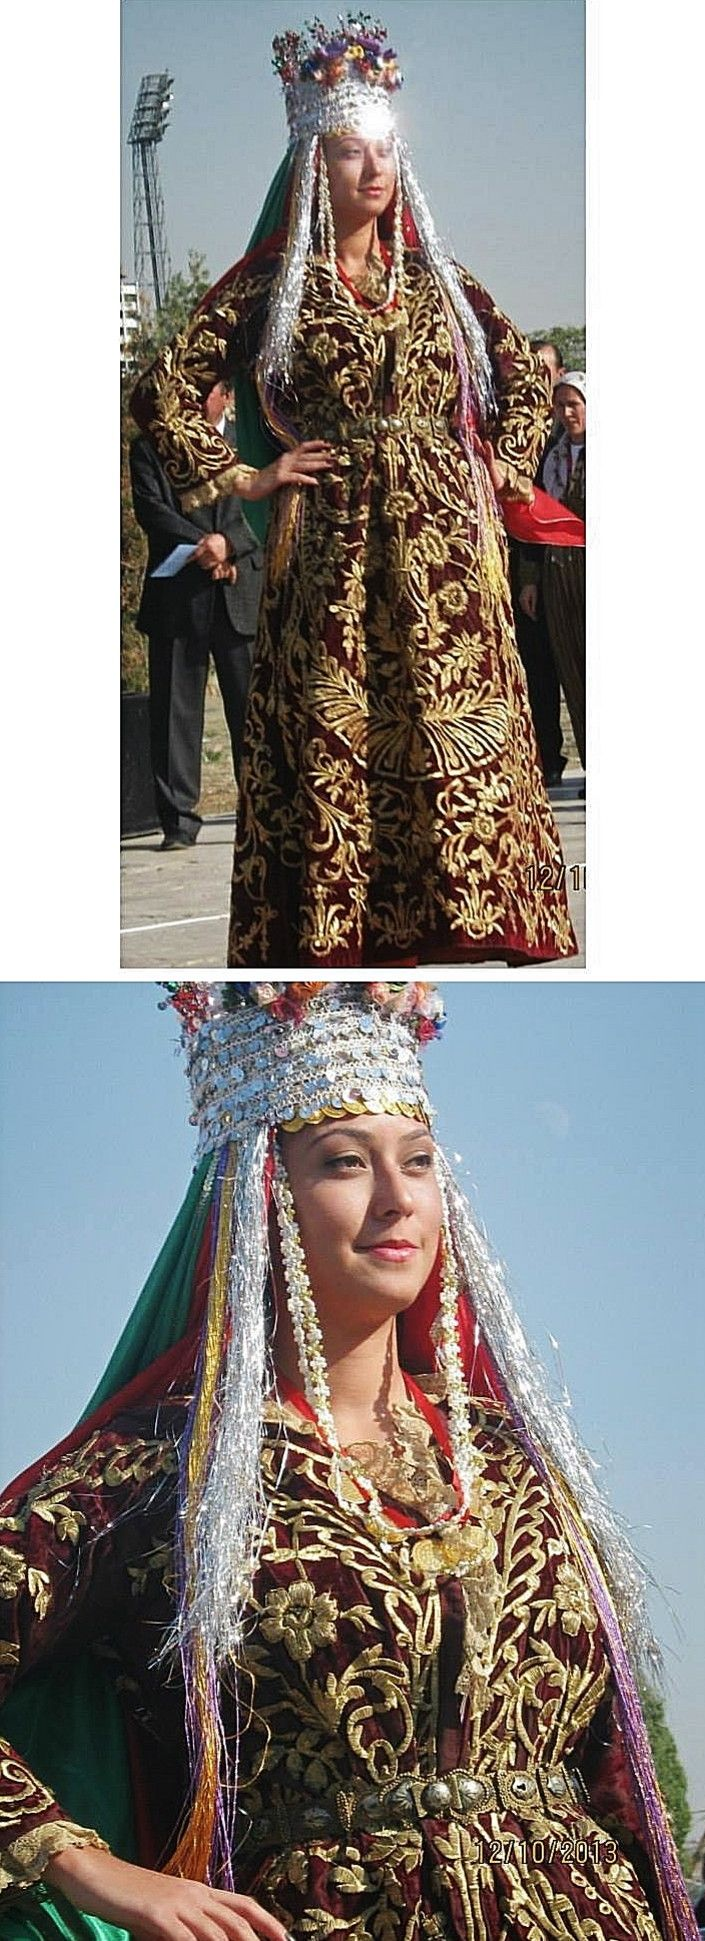 Traditional bridal costume from the Balıkesir province.  Clothing style: ca. 1925-1950.  With a velvet 'bindallı entari' (embroidered robe).